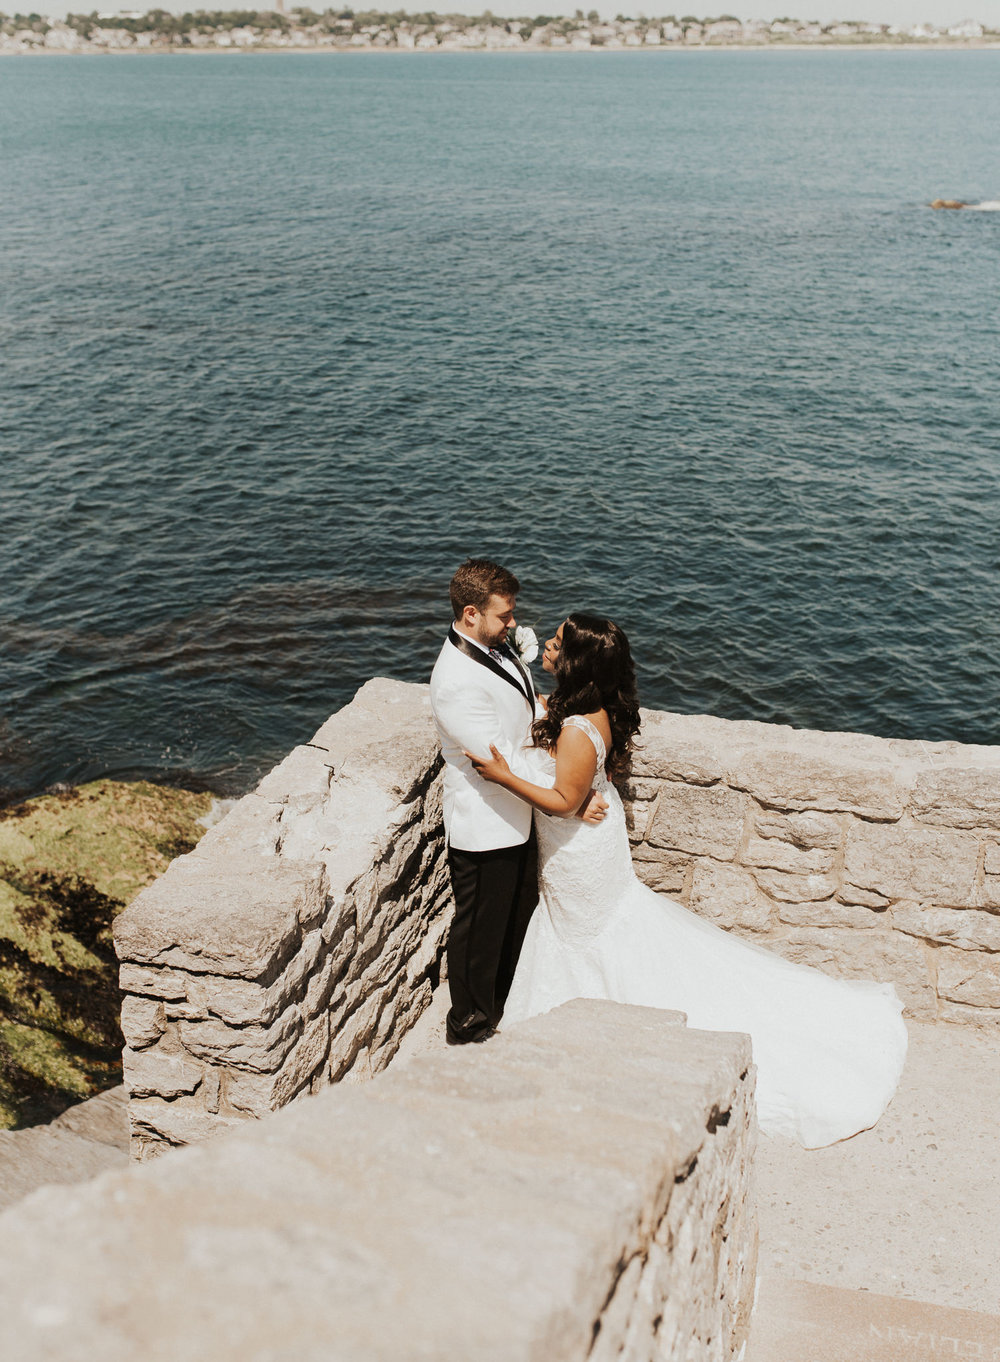 Janelle+Julian_BelleMerWedding-75.jpg